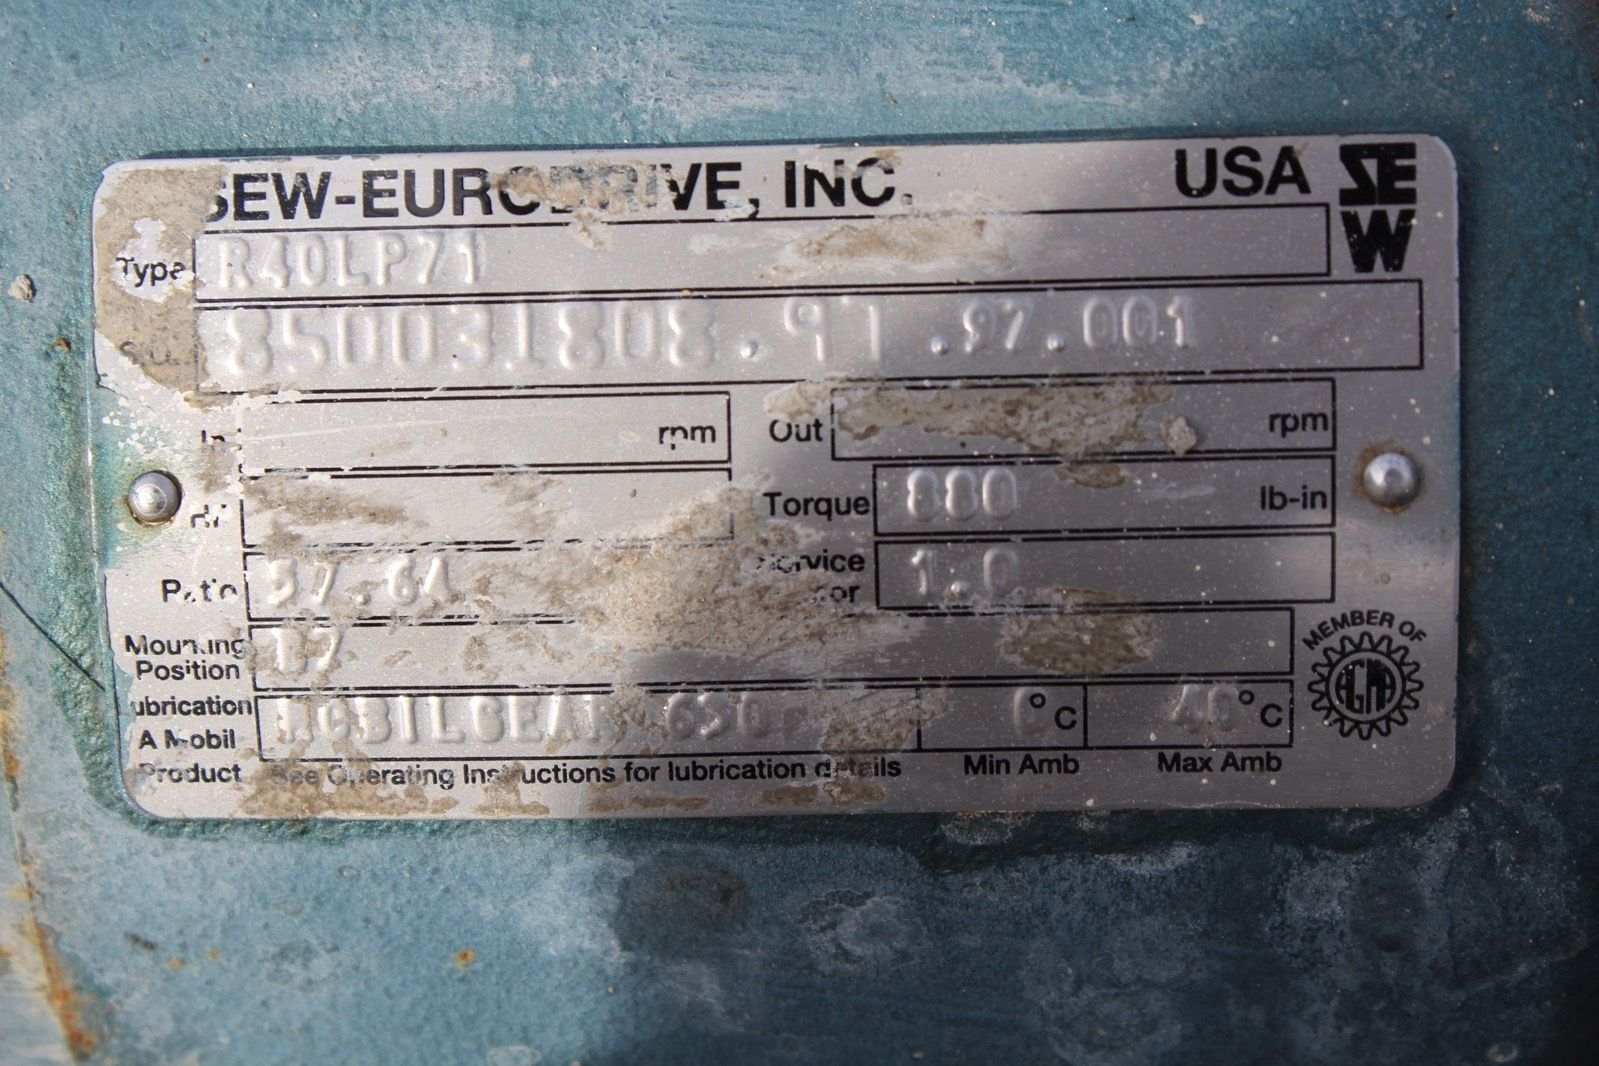 Sew-eurodrive R40LP71 Converter with DFT71D4 Motor *used* (Connex) 2